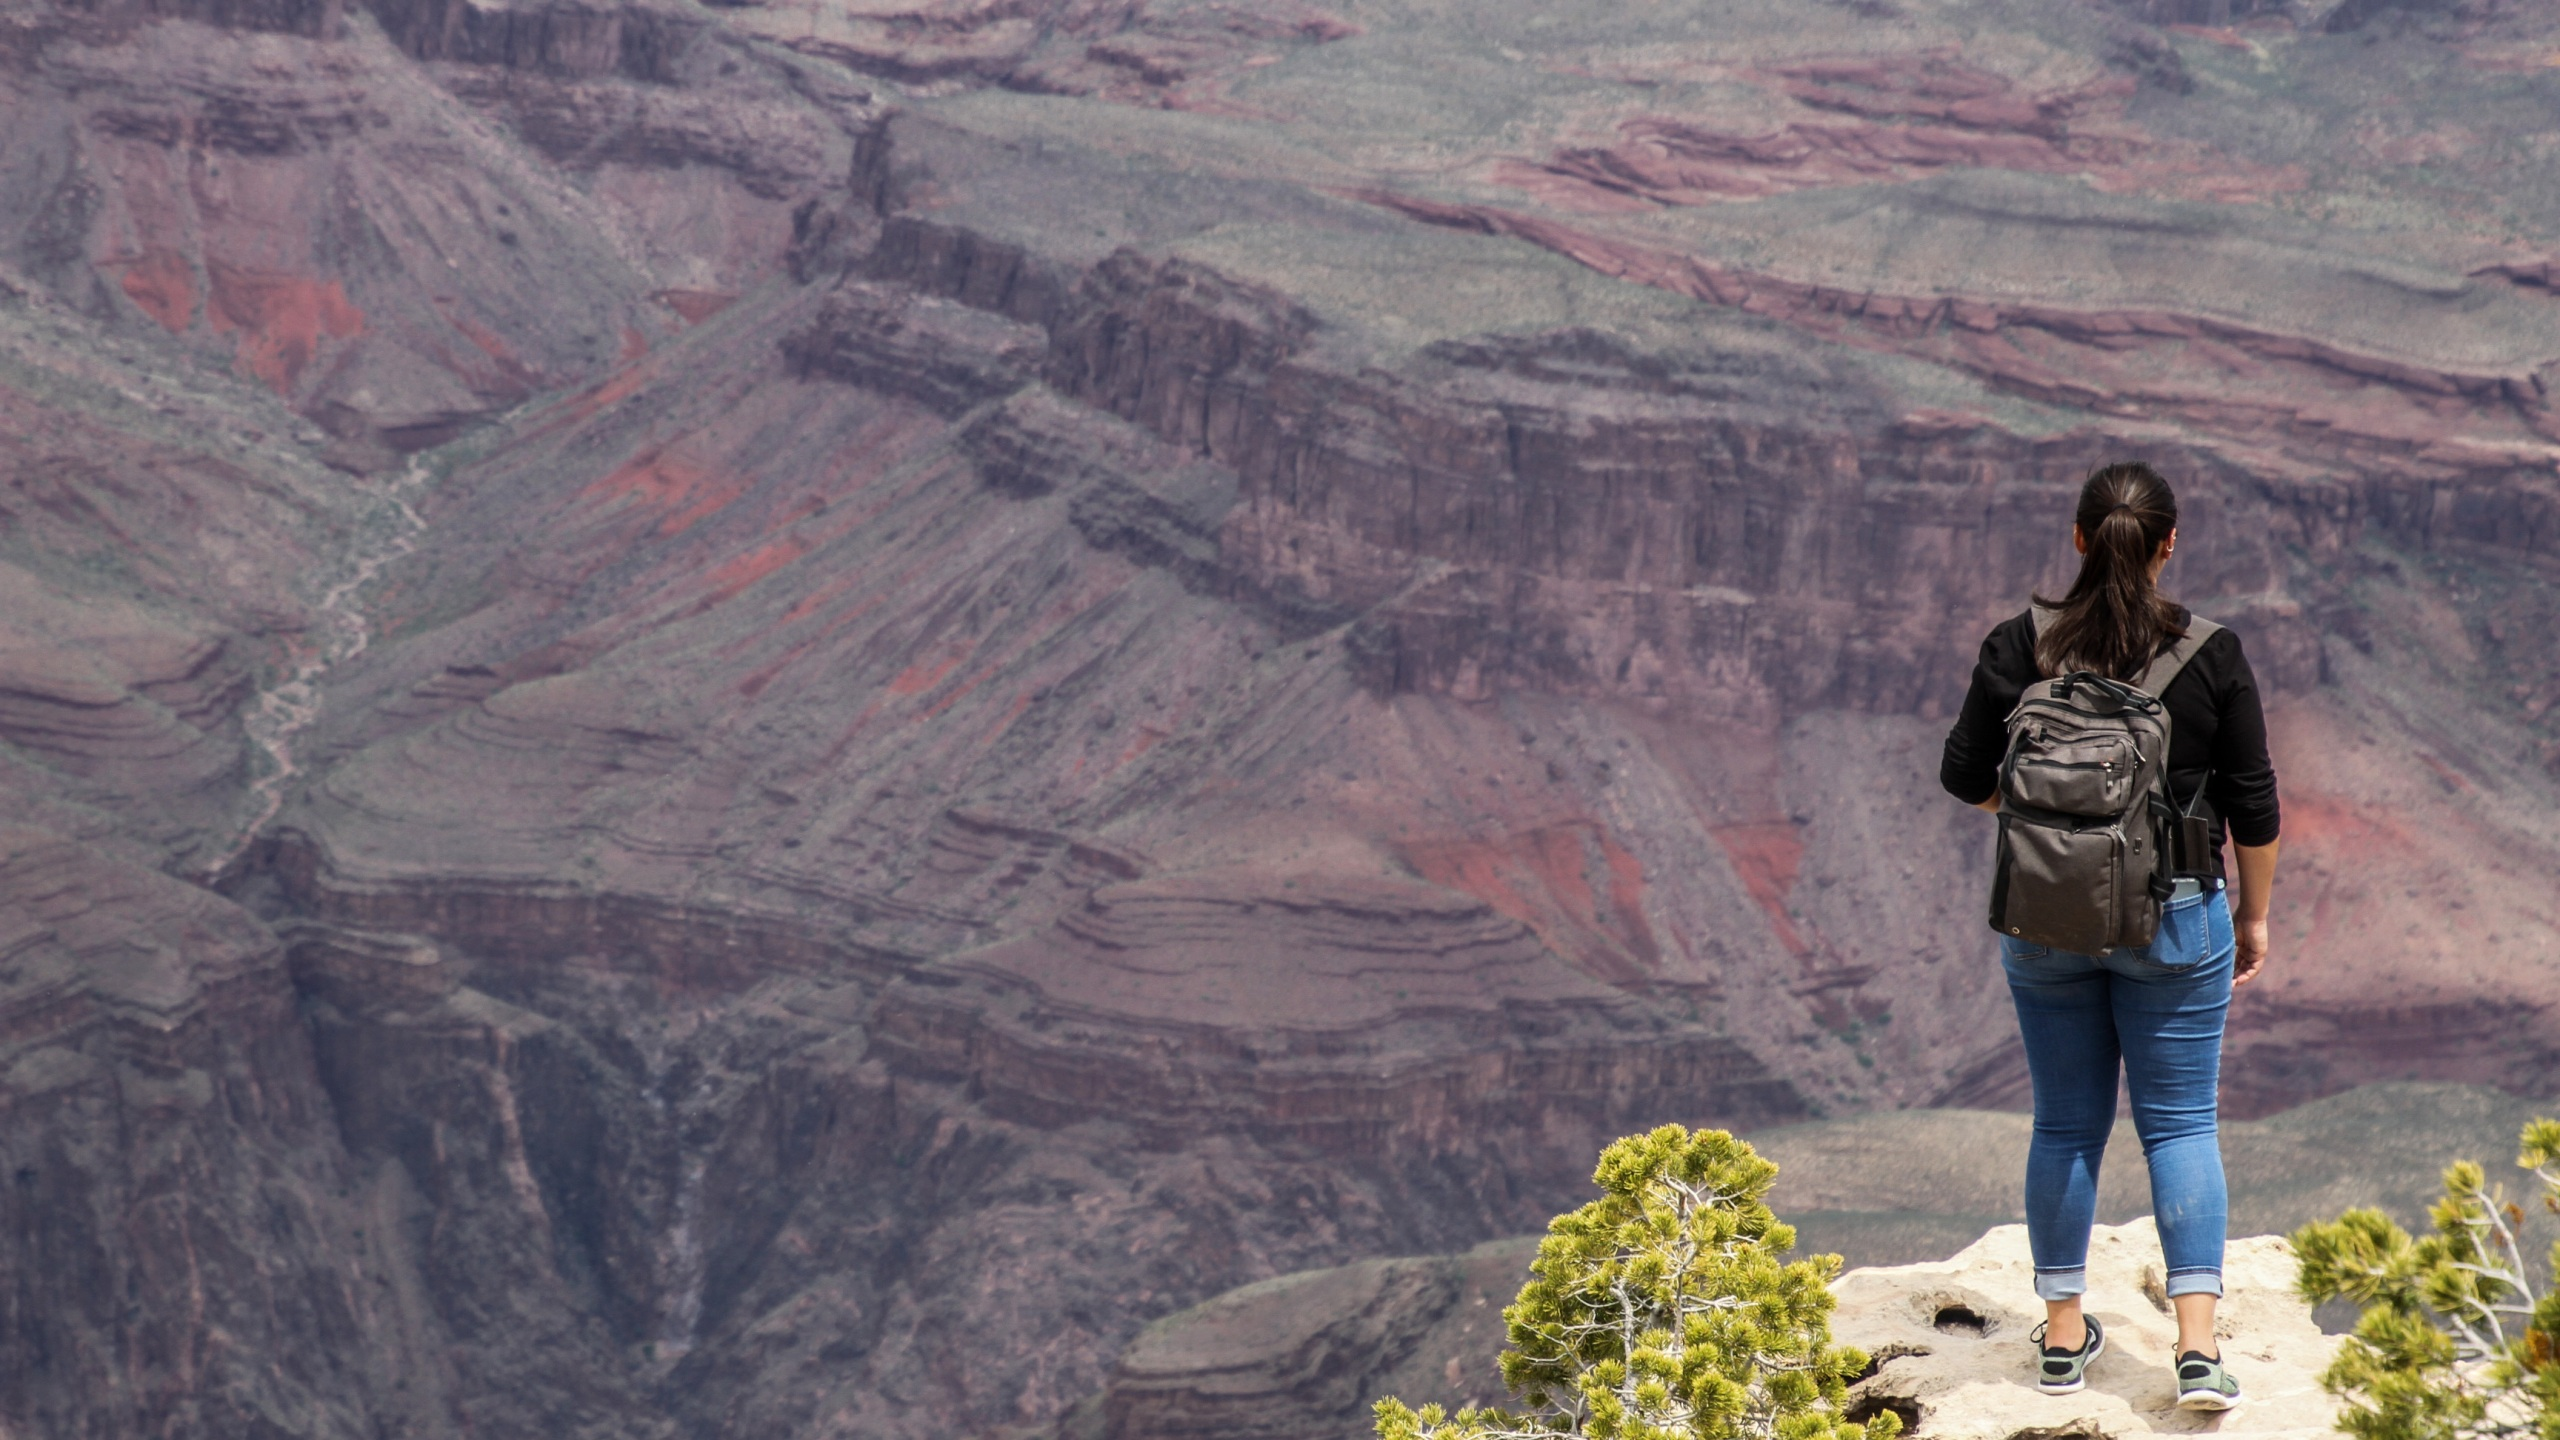 Hikers walk by the edge of the cliffs of the Grand Canyon